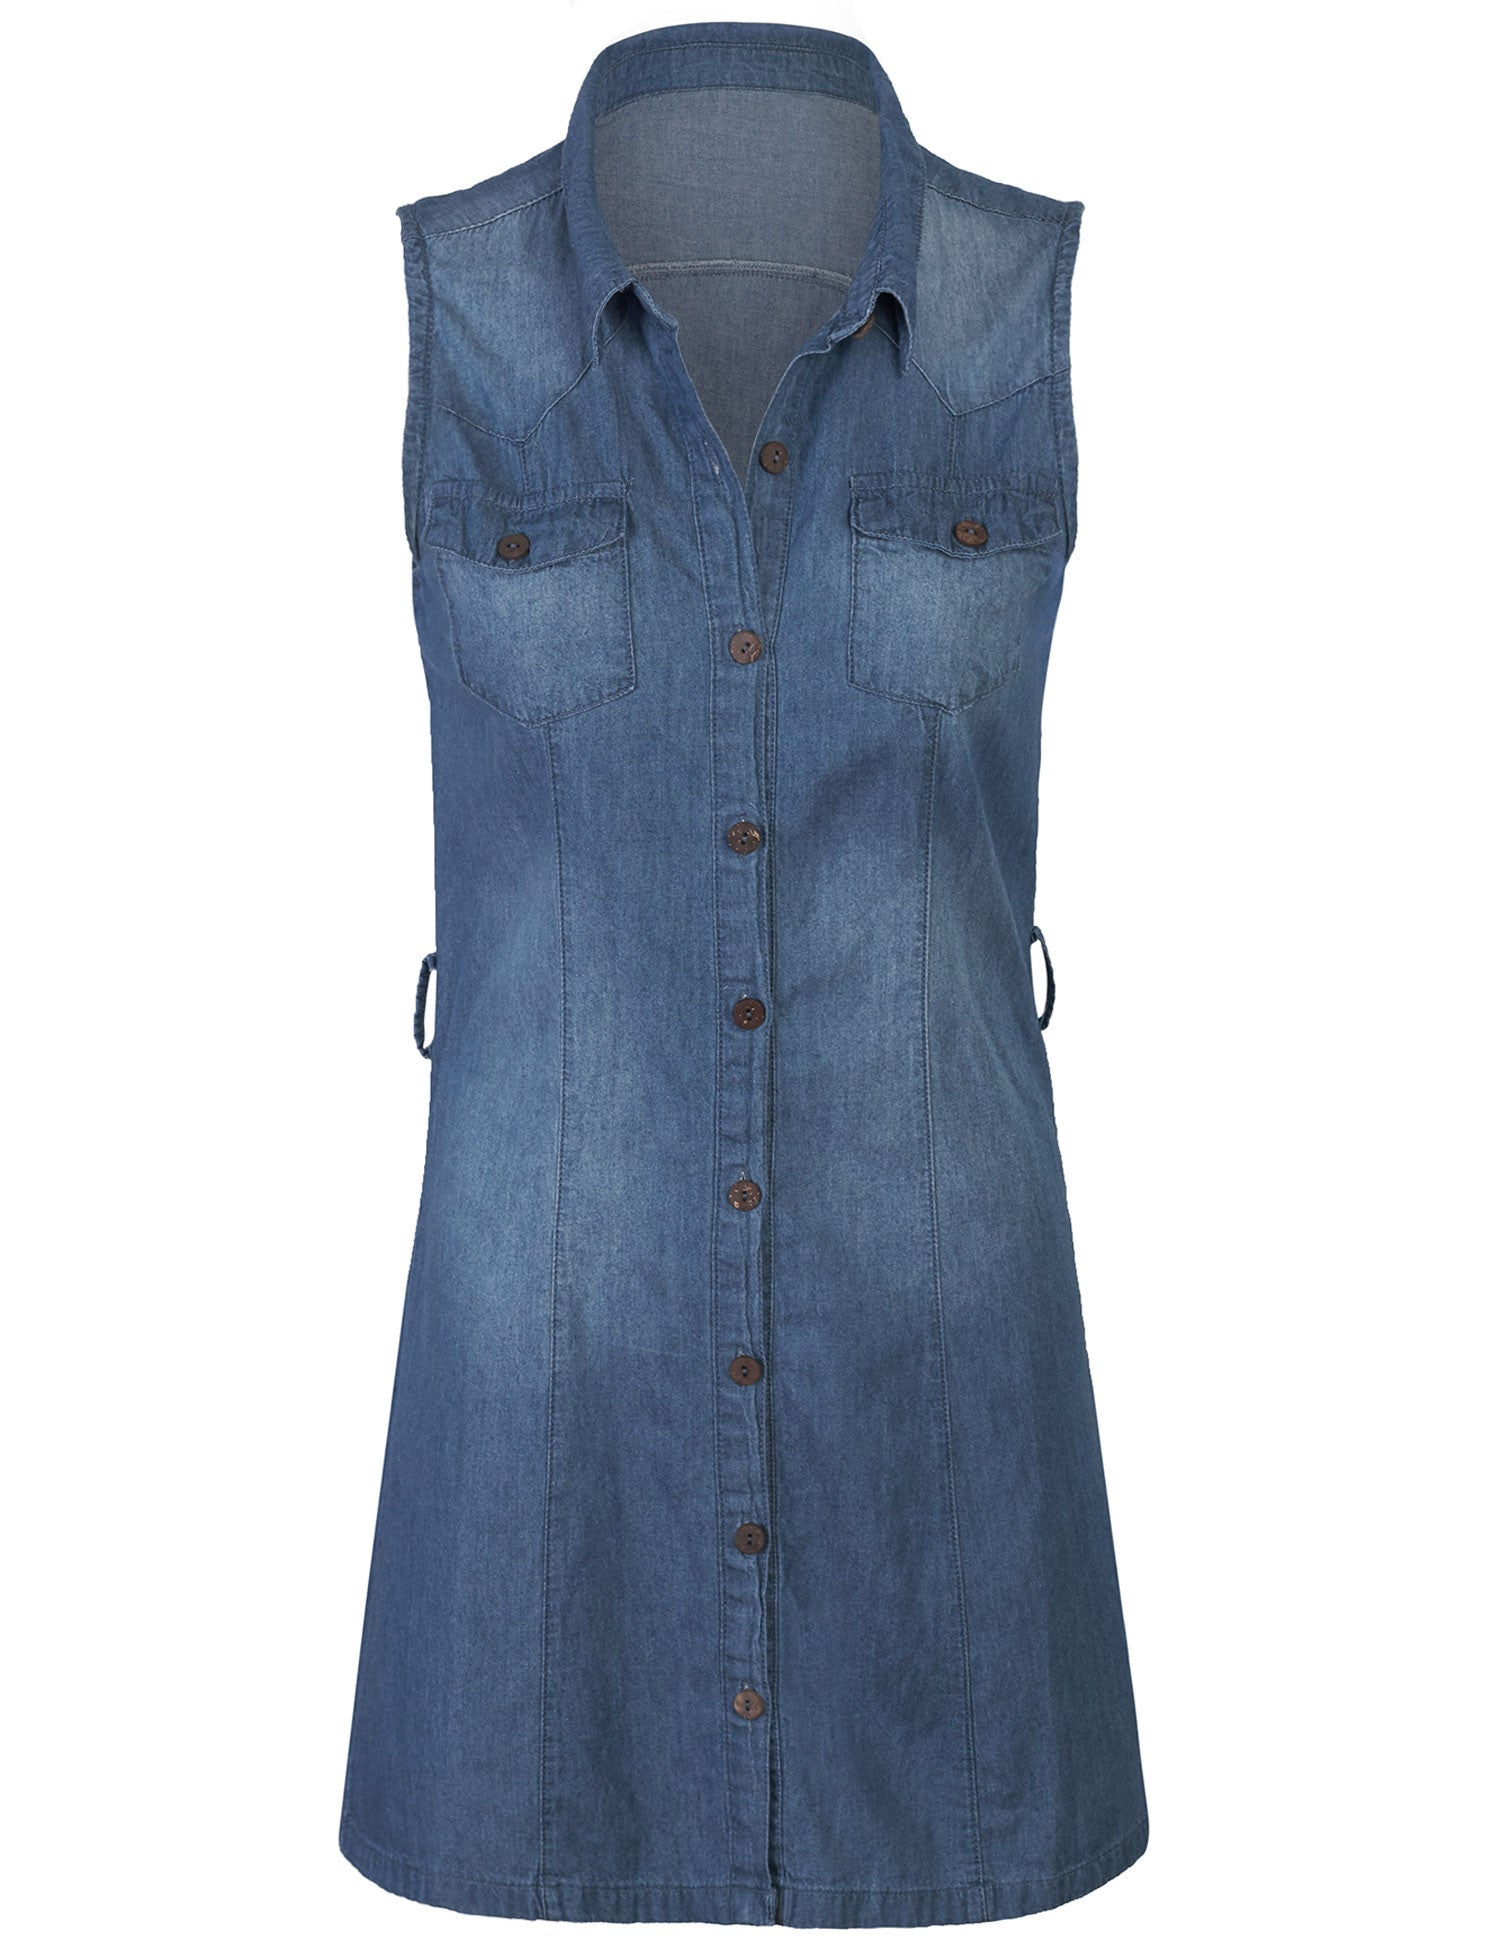 539f57891886de Sleeveless Button Front Belted Washed Chambray Denim Shirt Dress - KOGMO